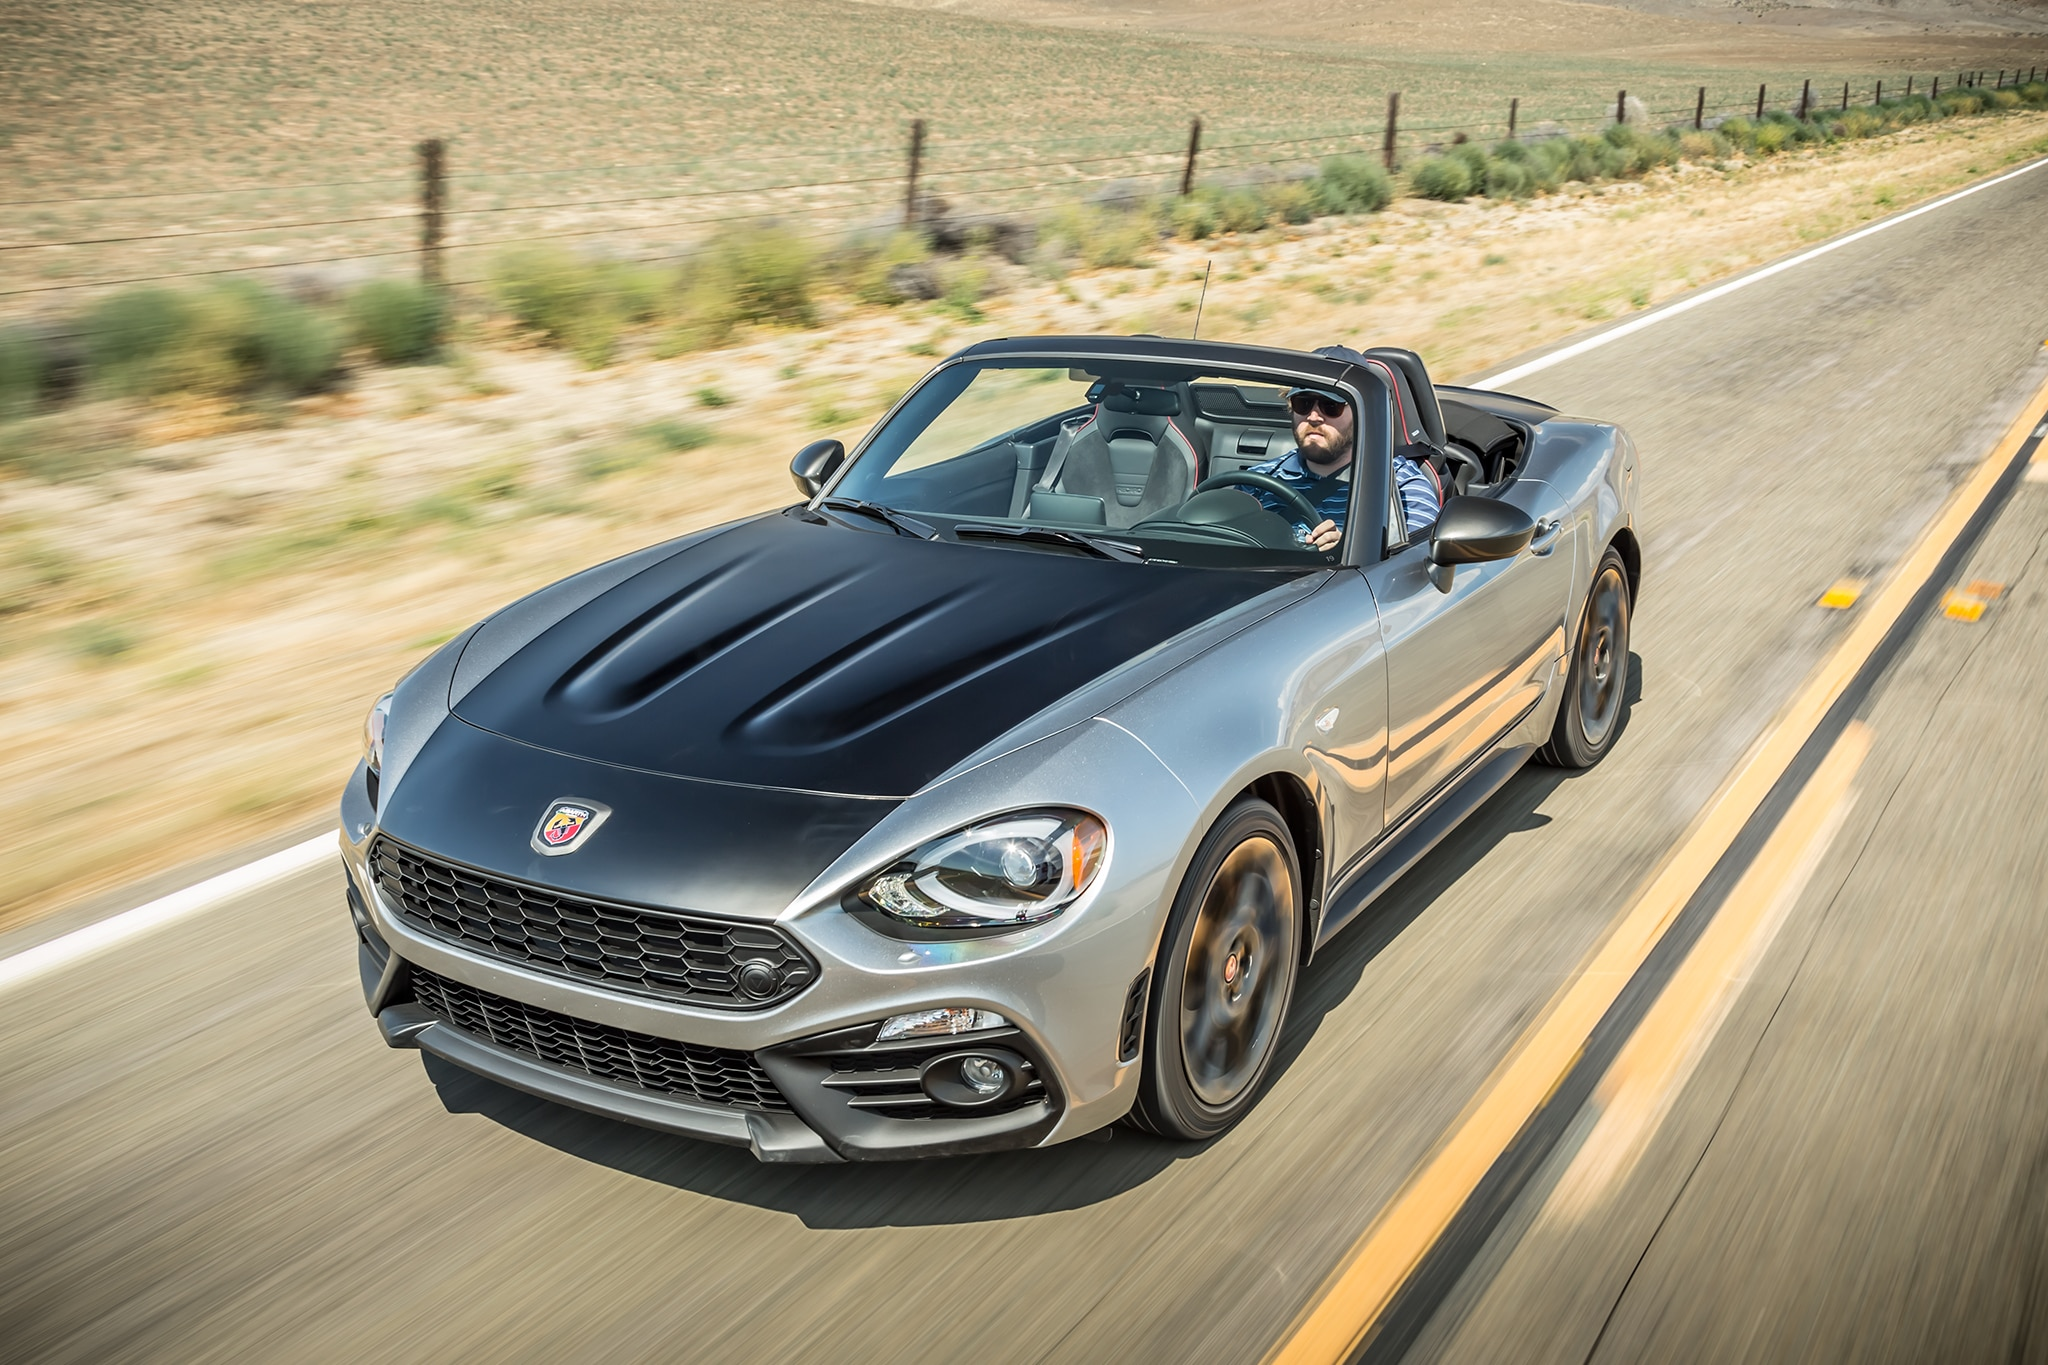 Fiat Abarth Specifications >> 2017 Fiat Spider Abarth vs. 2016 Mazda MX-5 Miata Club